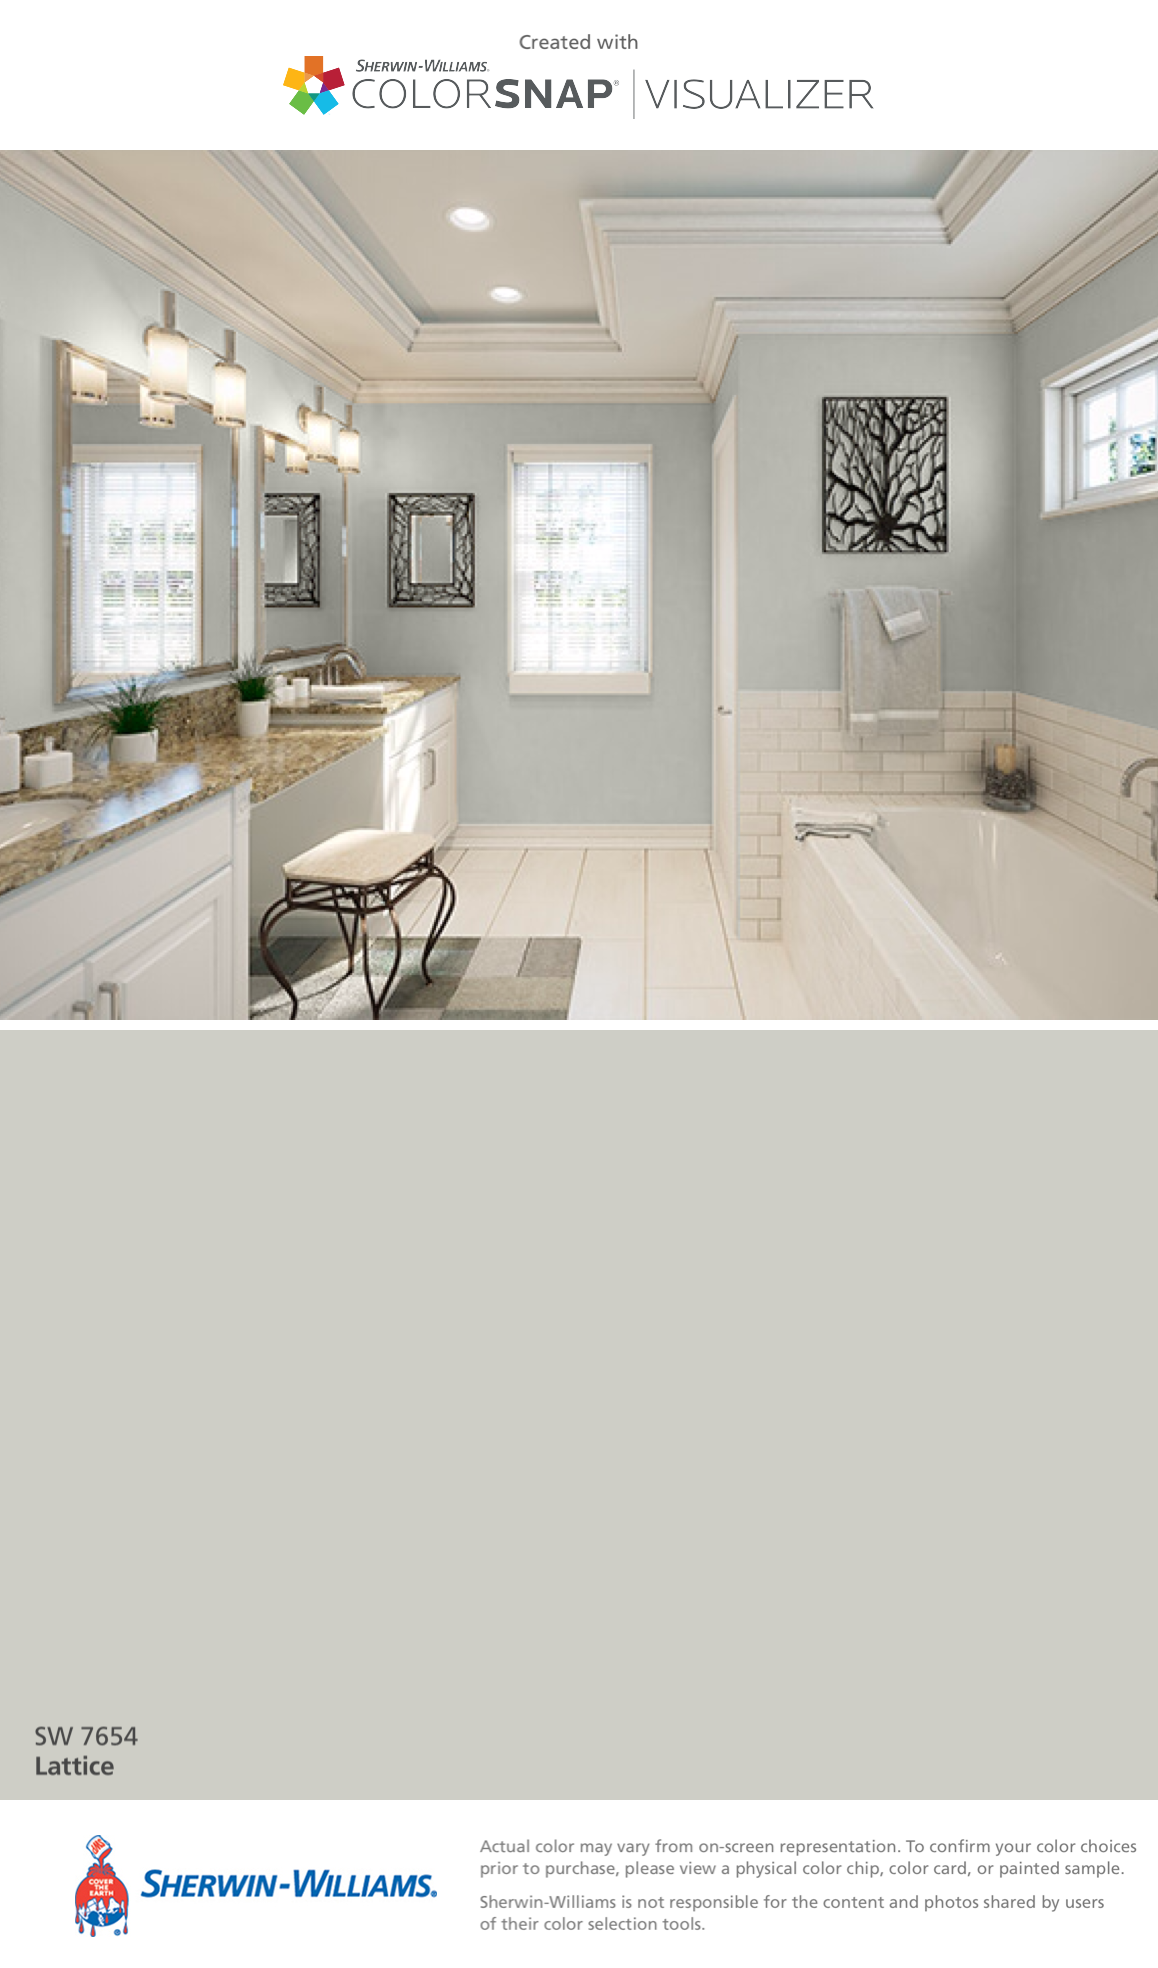 Sherwin williams perfect greige ideas pictures remodel - I Found This Color With Colorsnap Visualizer For Iphone By Sherwin Williams Lattice